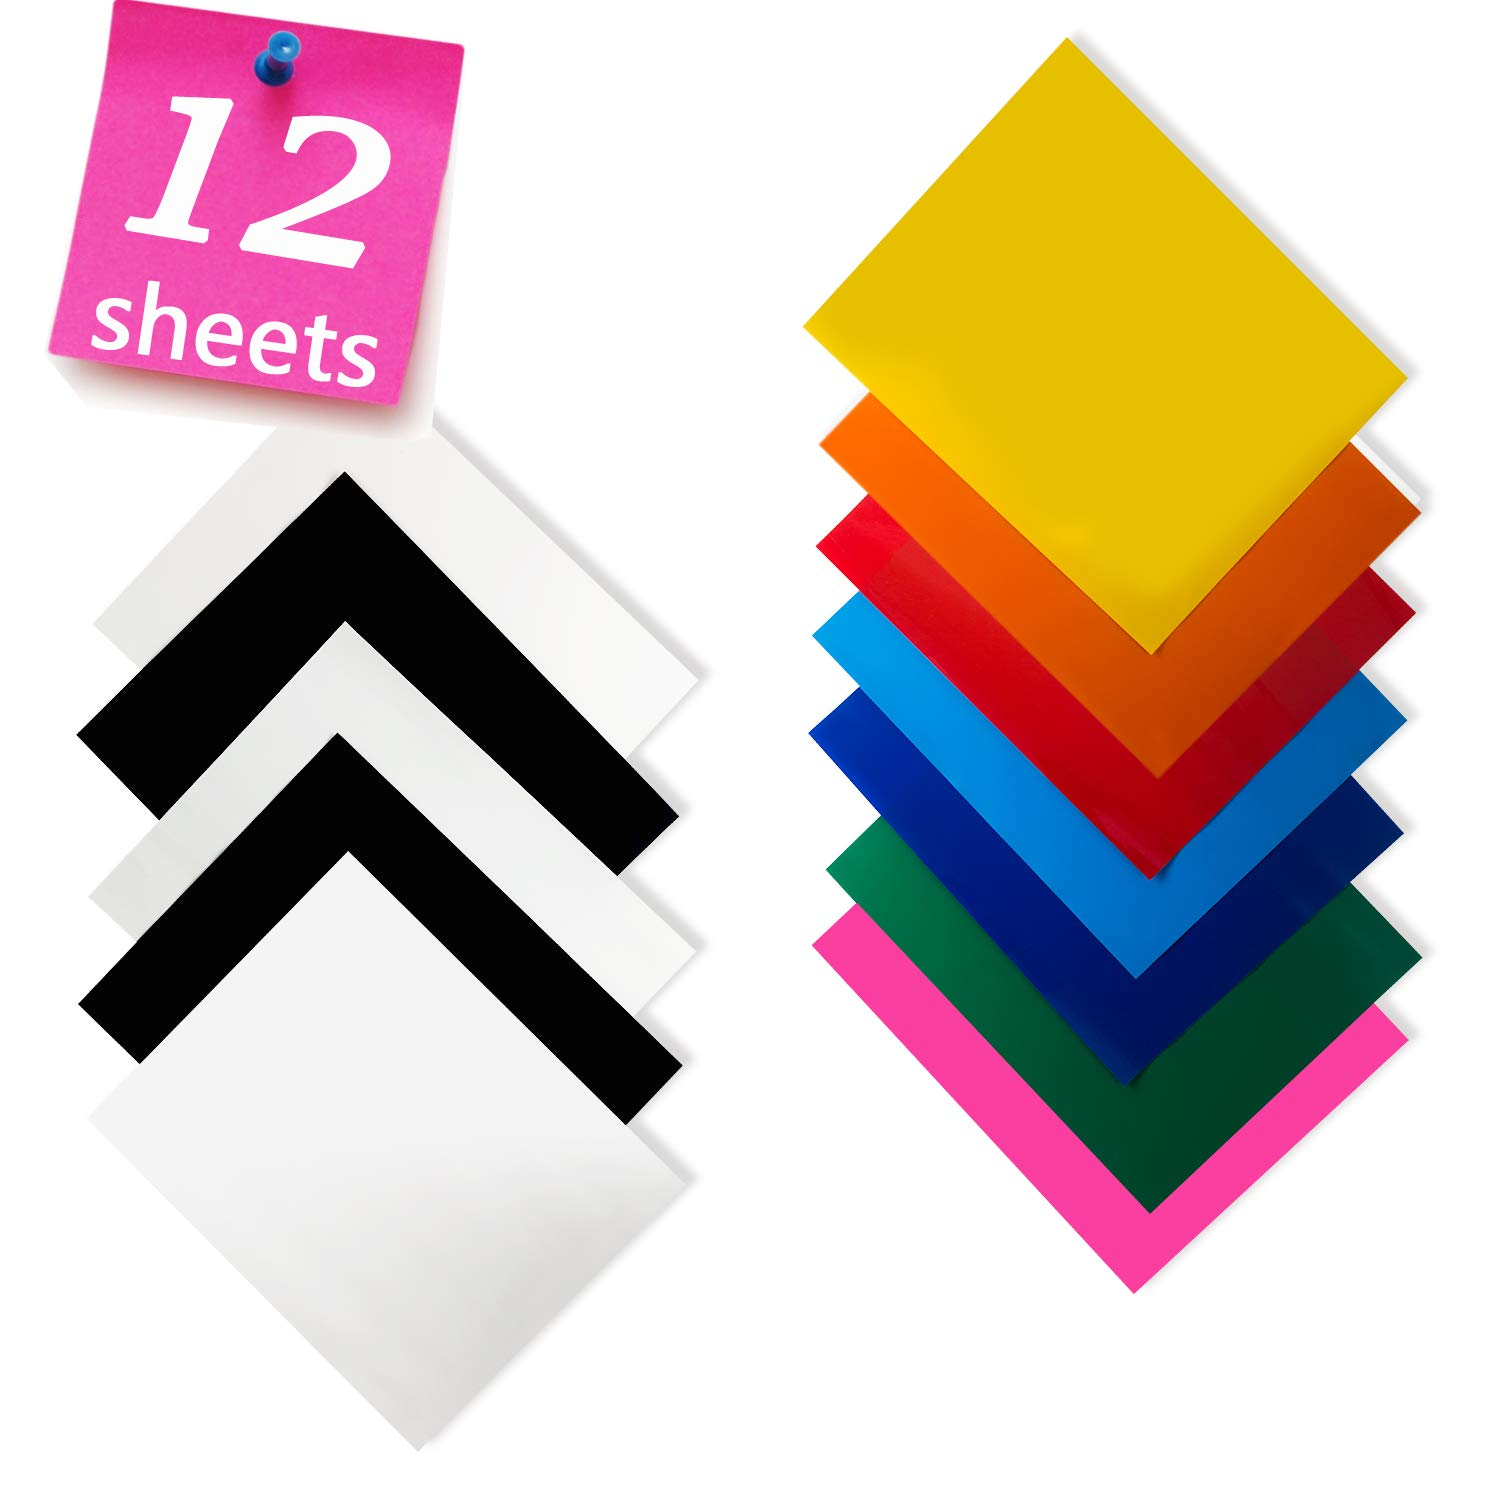 Heat Transfer Vinyl for T-Shirts 12×10″ 12 Sheets-Iron On Vinyl HTV Bundle